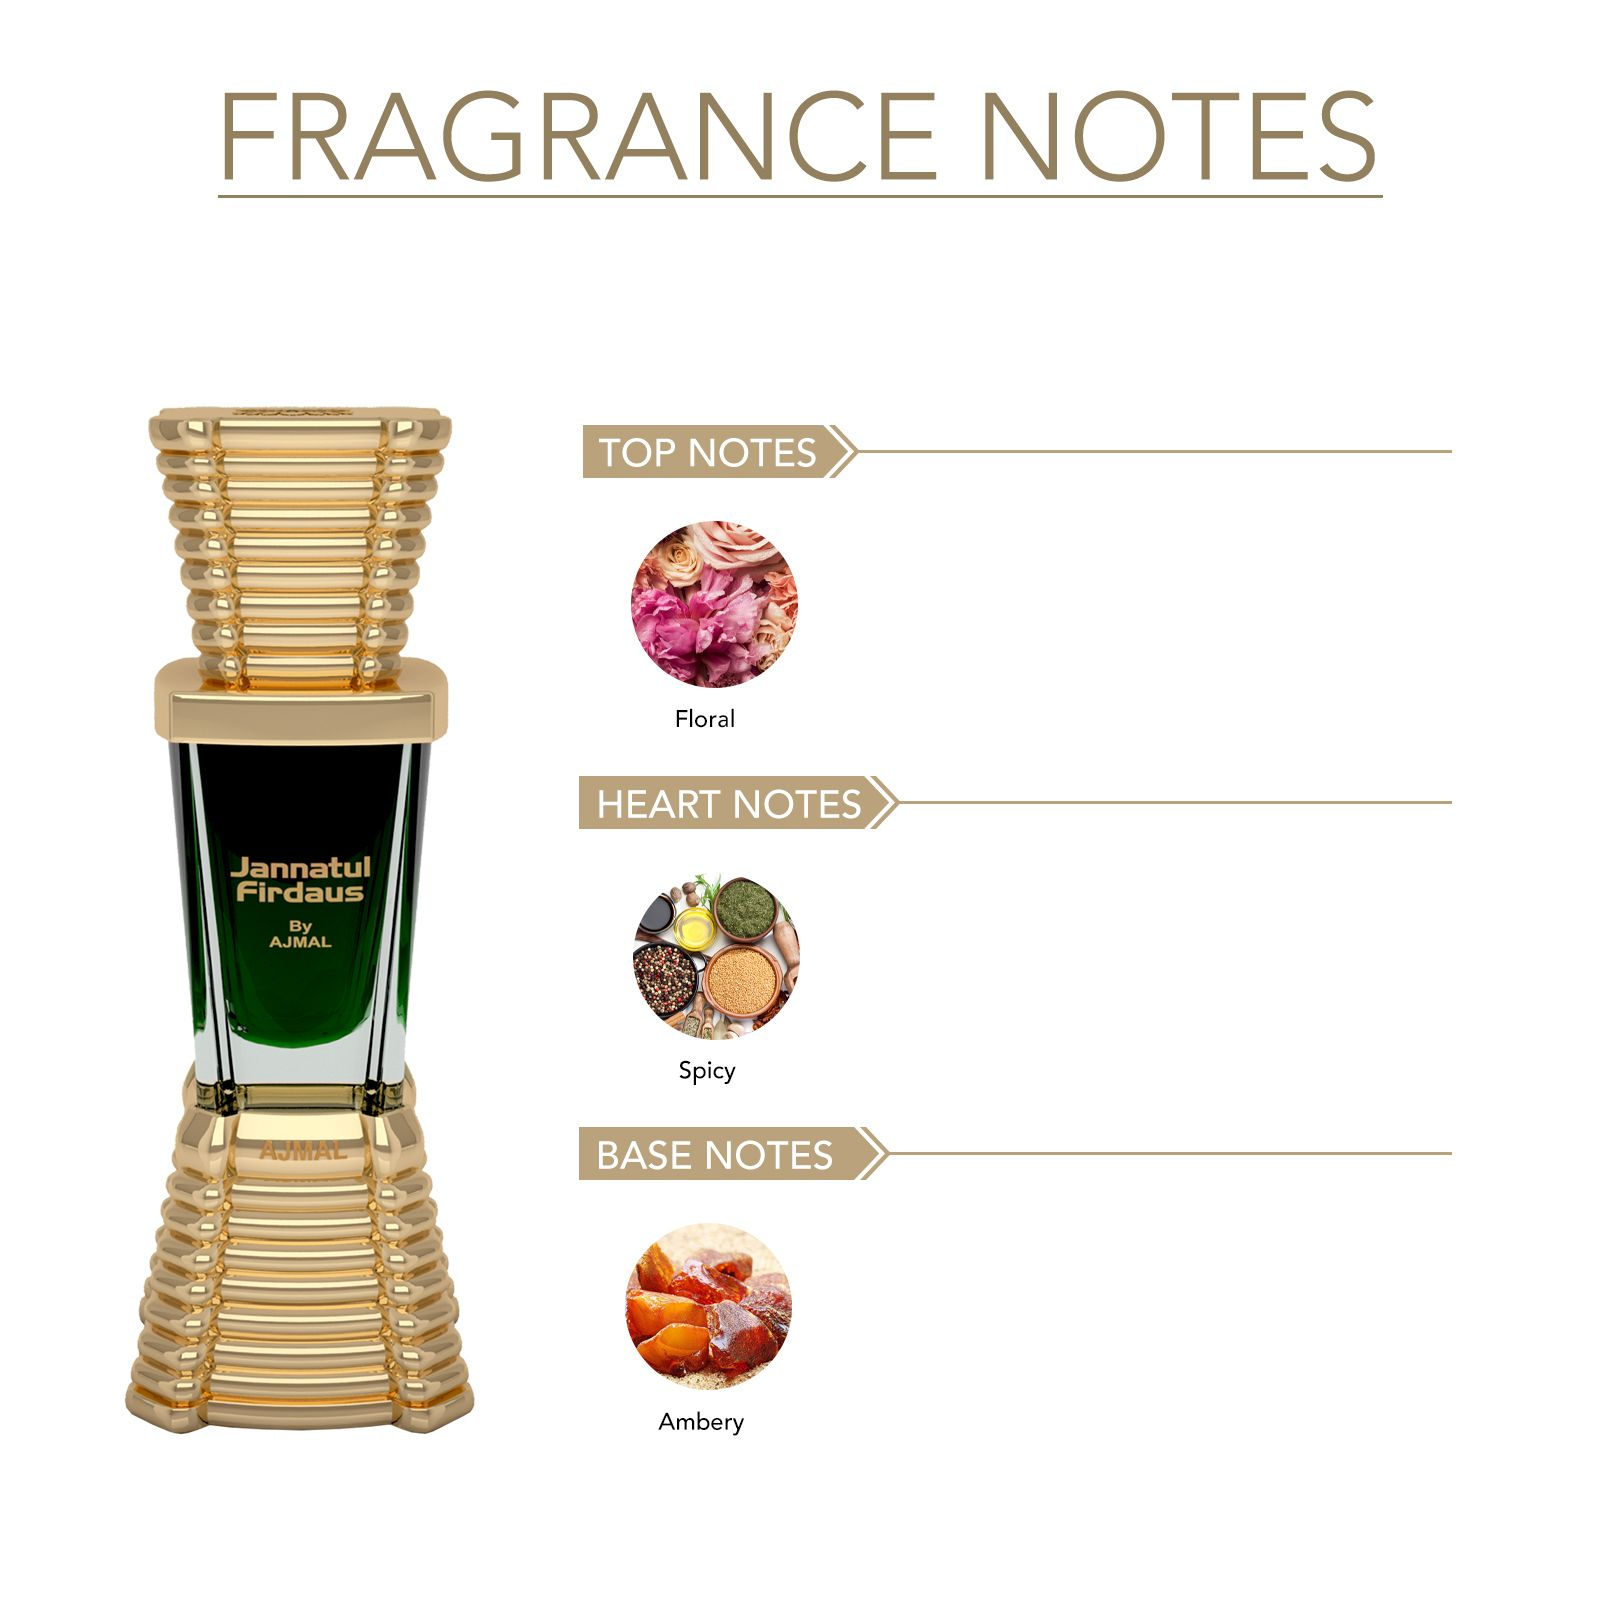 Ajmal | Ajmal Jannatul Firdaus Concentrated Perfume Oil Oriental Alcohol-free Attar 10ml for Unisex and Wisal Deodorant Floral Musky Fragrance 200ml for Women + 2 Parfum Testers FREE